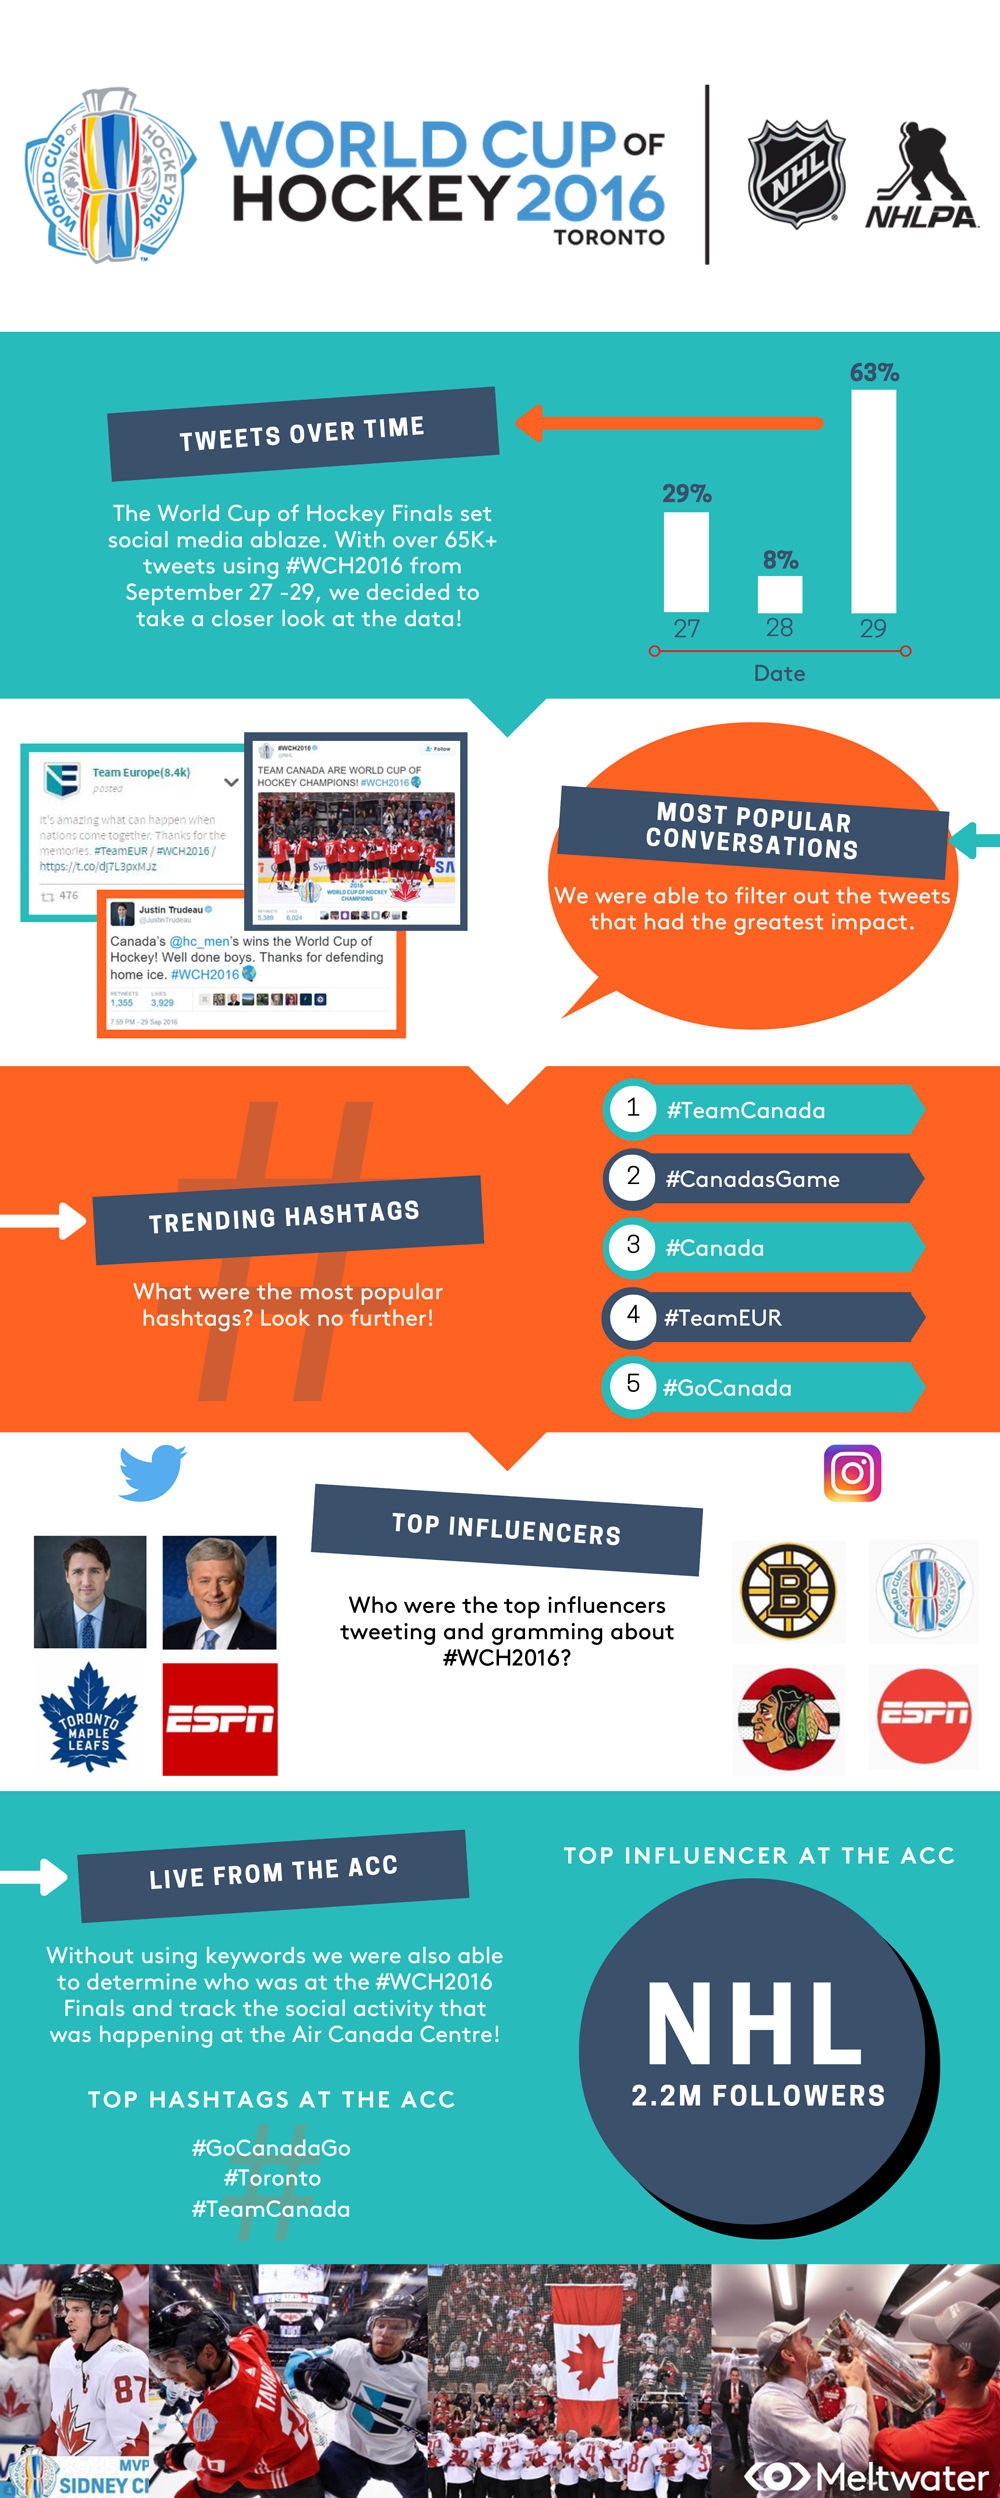 wch2016_infographic.png